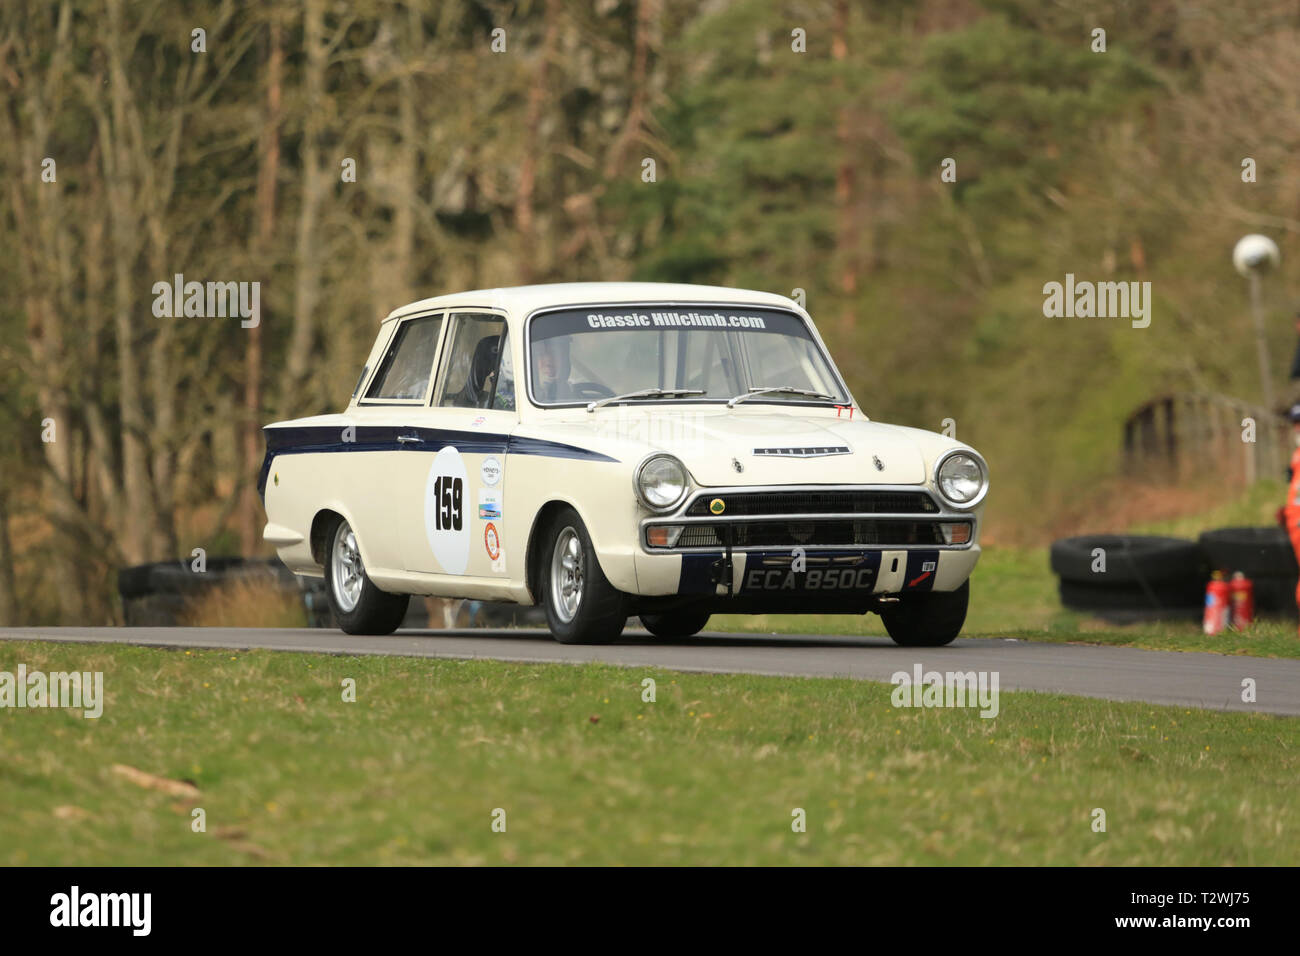 A 1965 Lotus Cortina taking part in a hillclimb event in the UK. Stock Photo